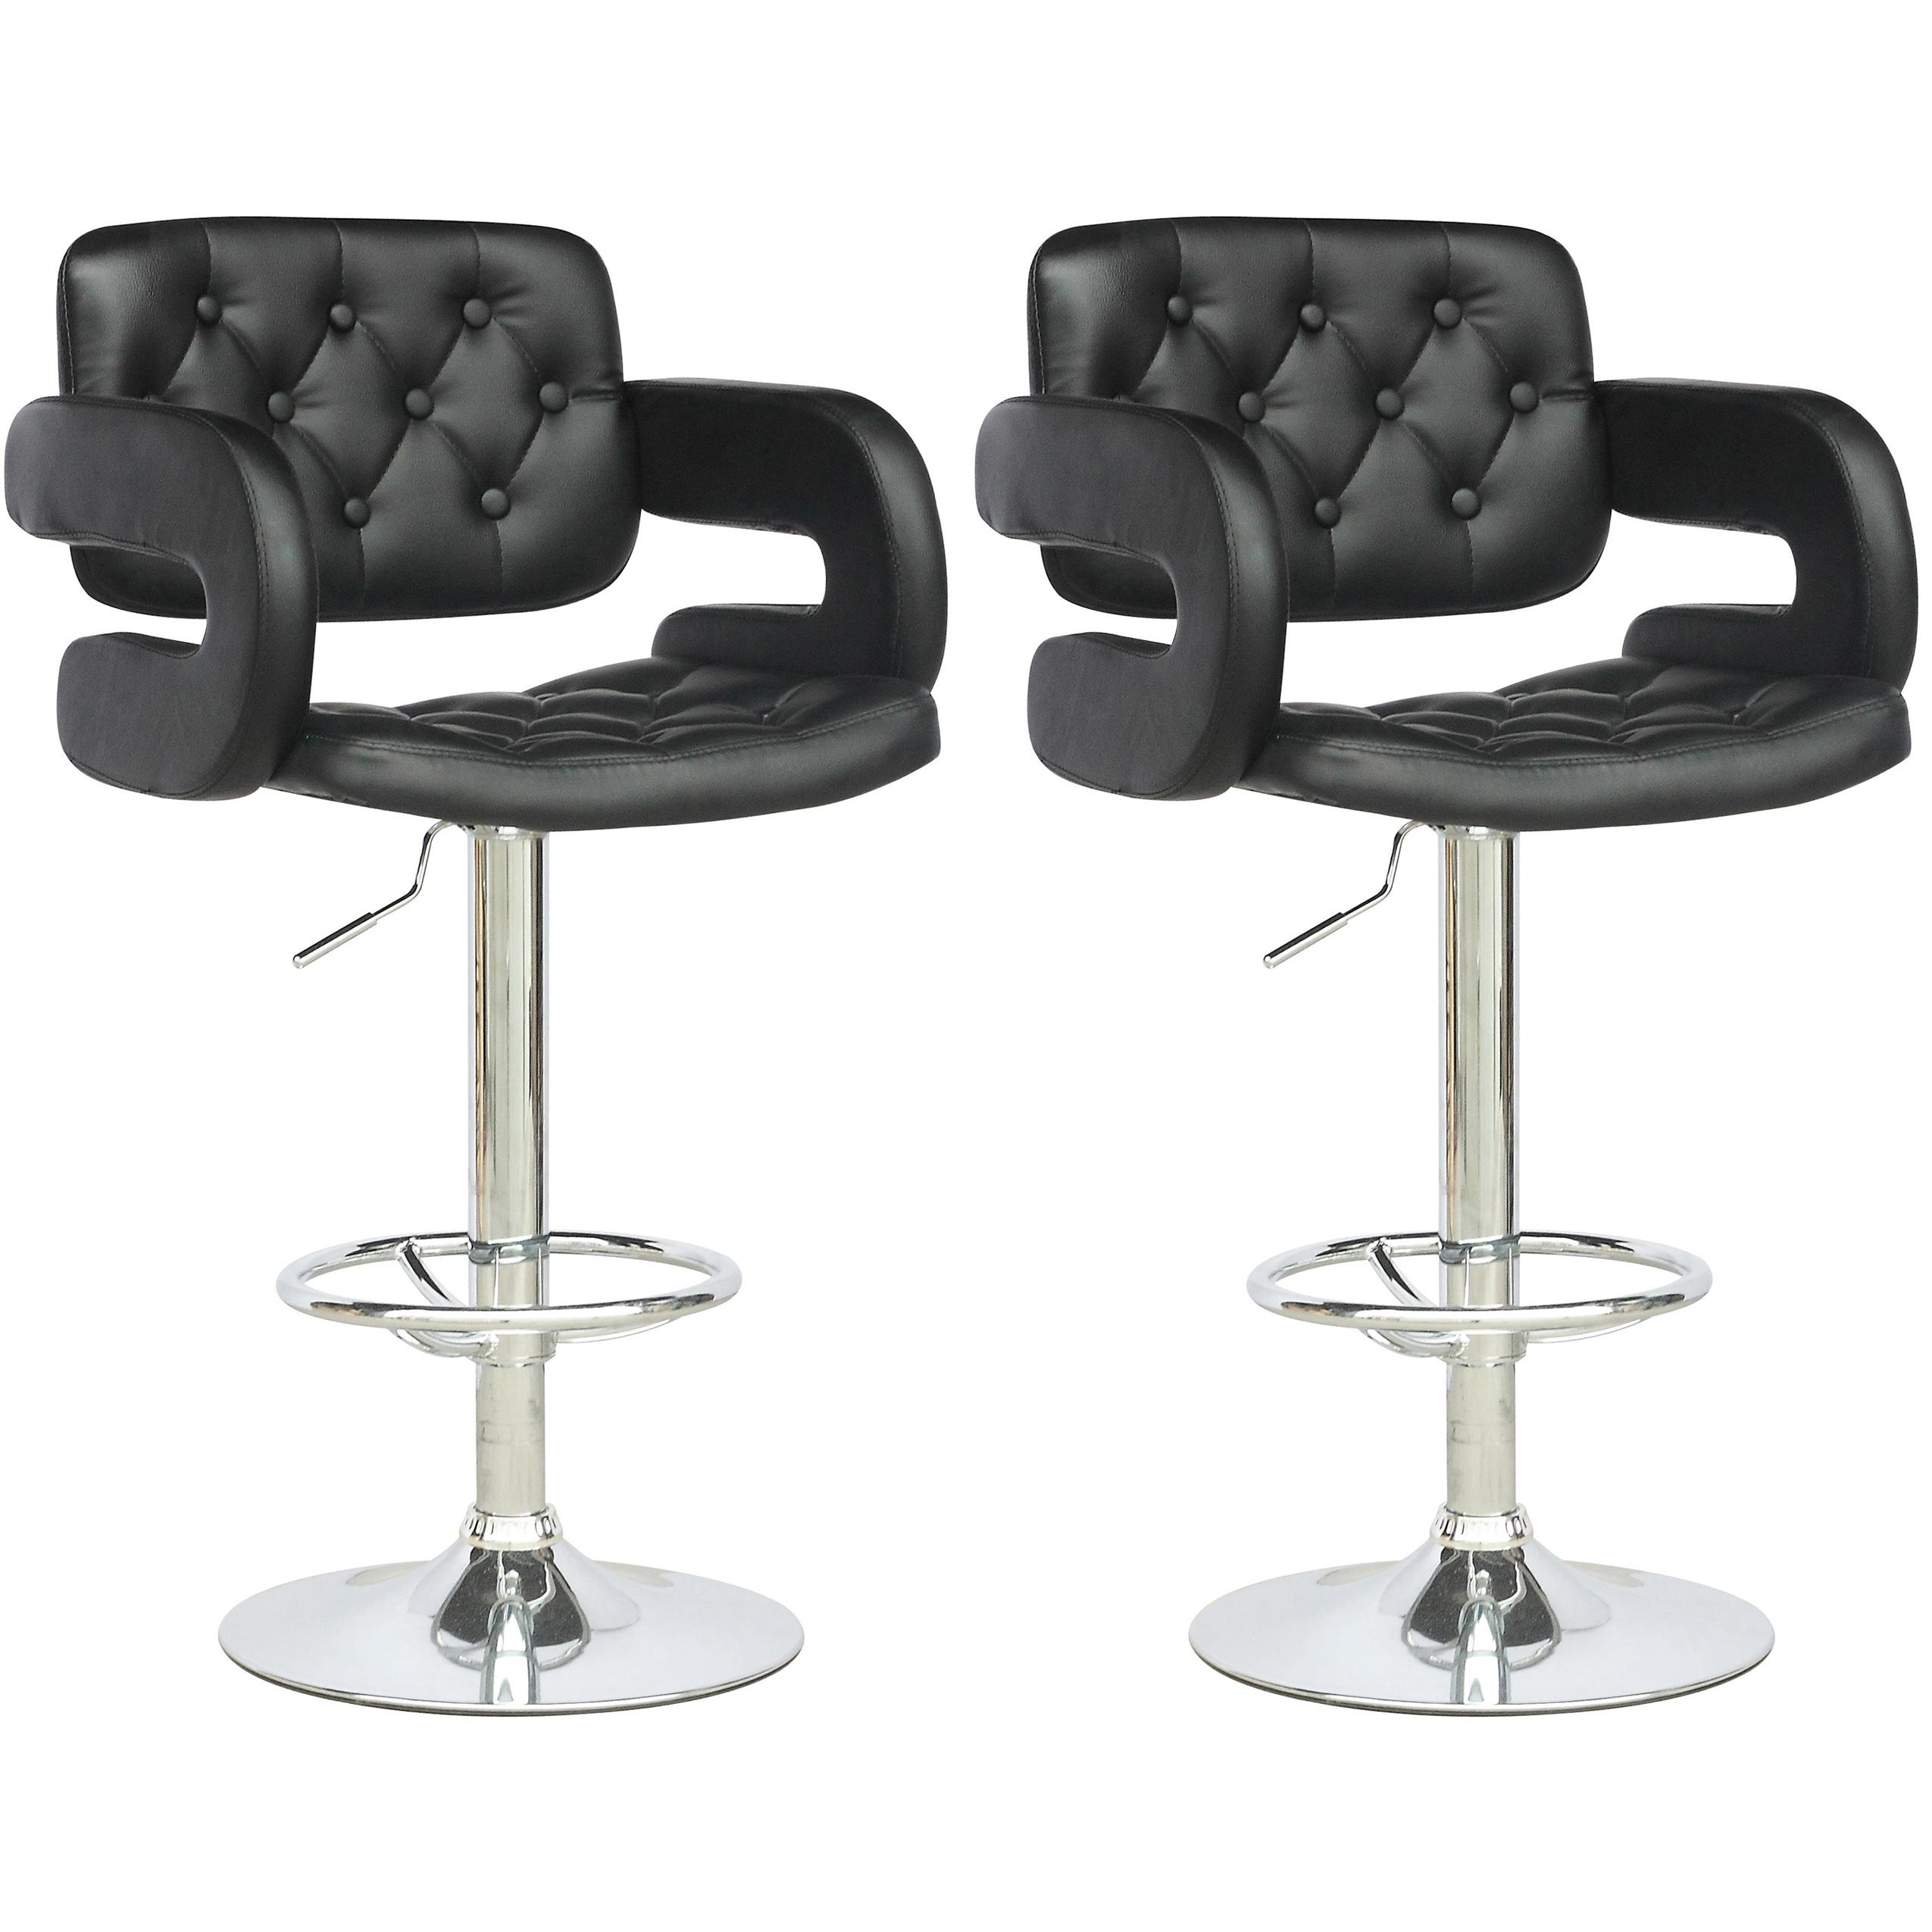 Corliving dab 909 b tufted adjustable bar stool with - Amazon bedroom chairs and stools ...